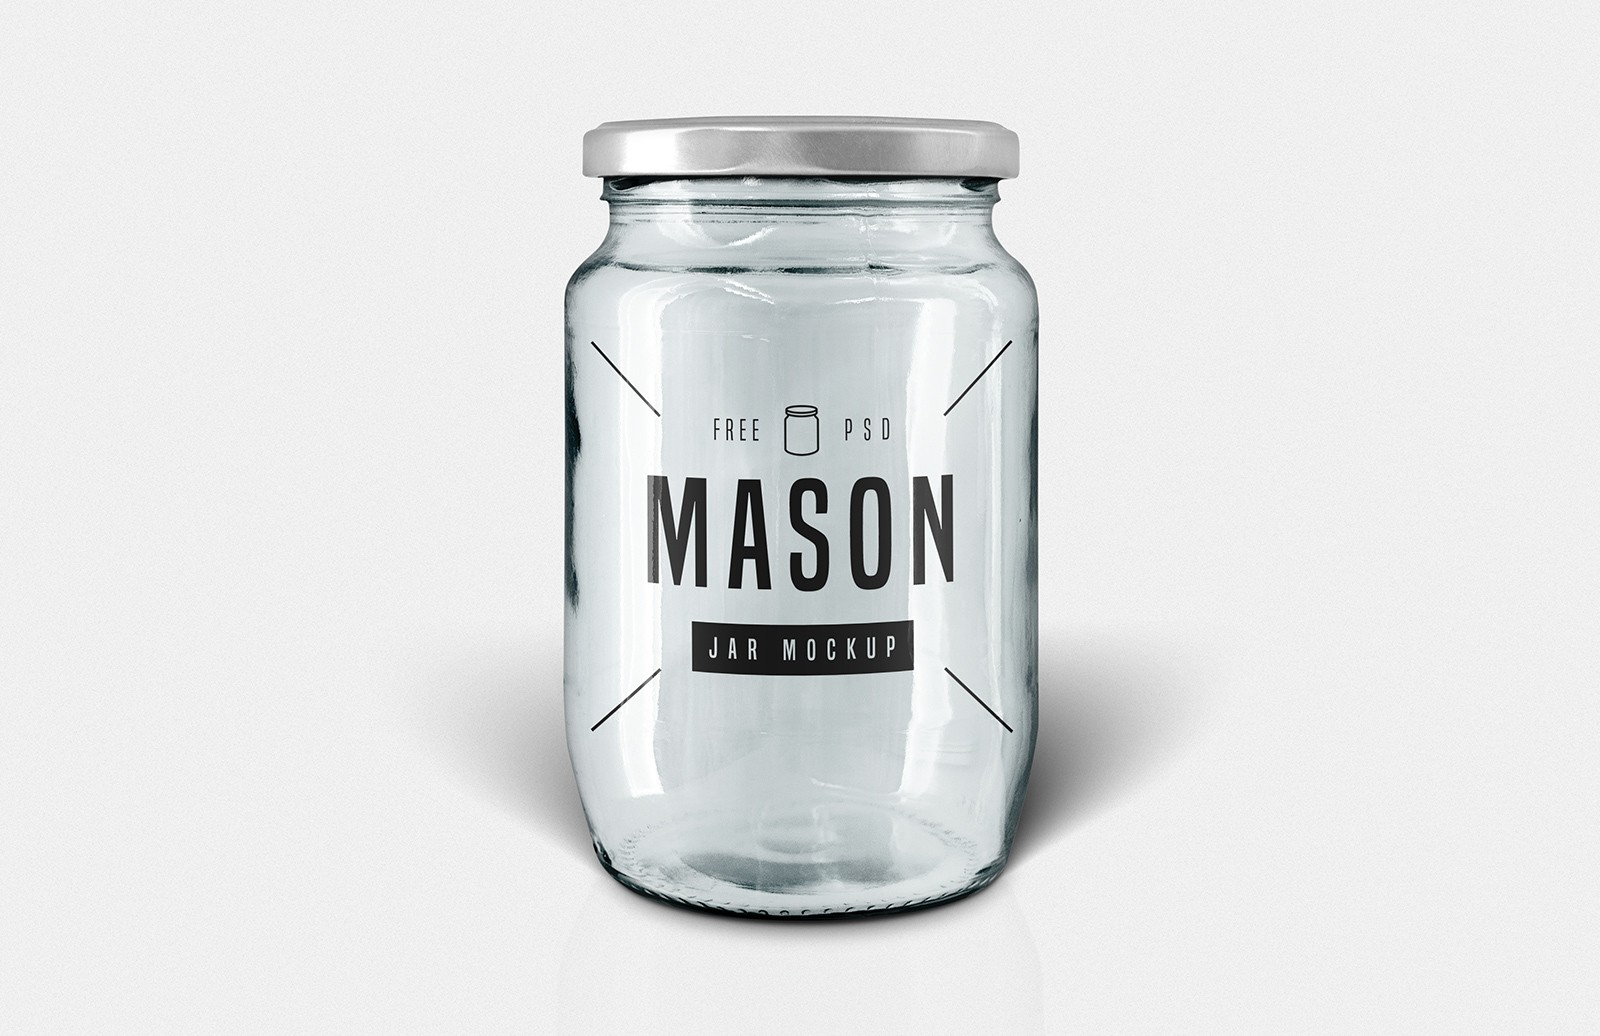 Free Glass Mason Jar Mockup